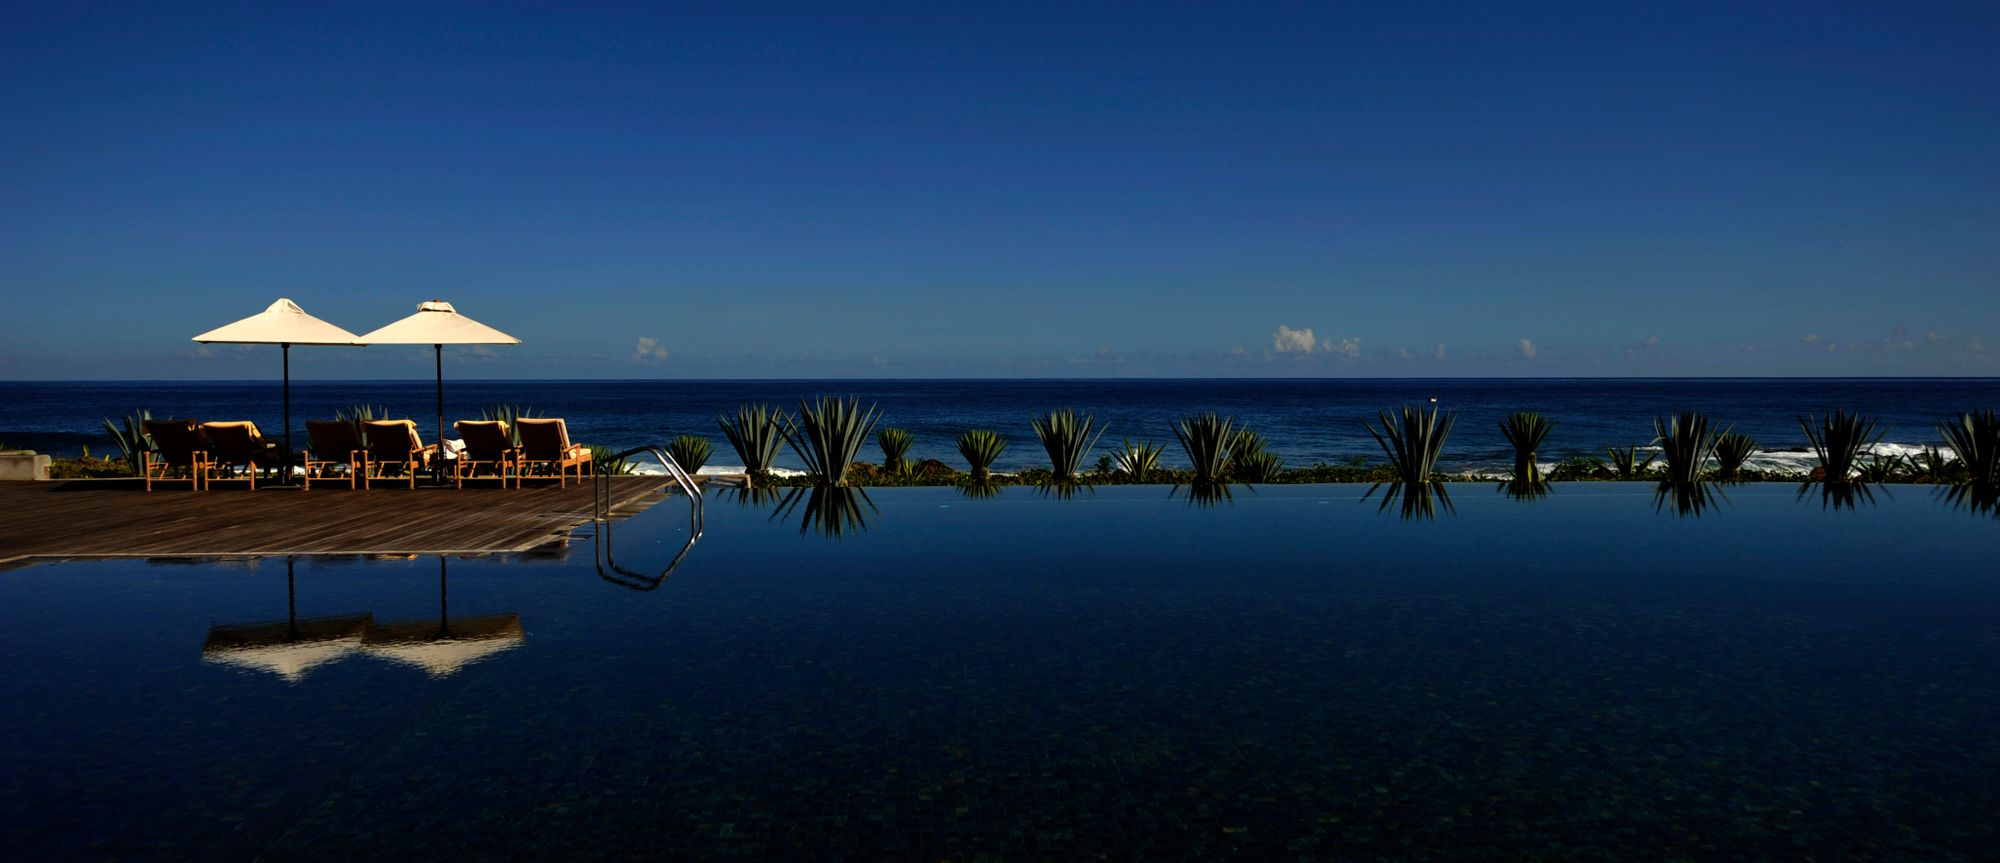 club med plantation albion piscine - ile maurice